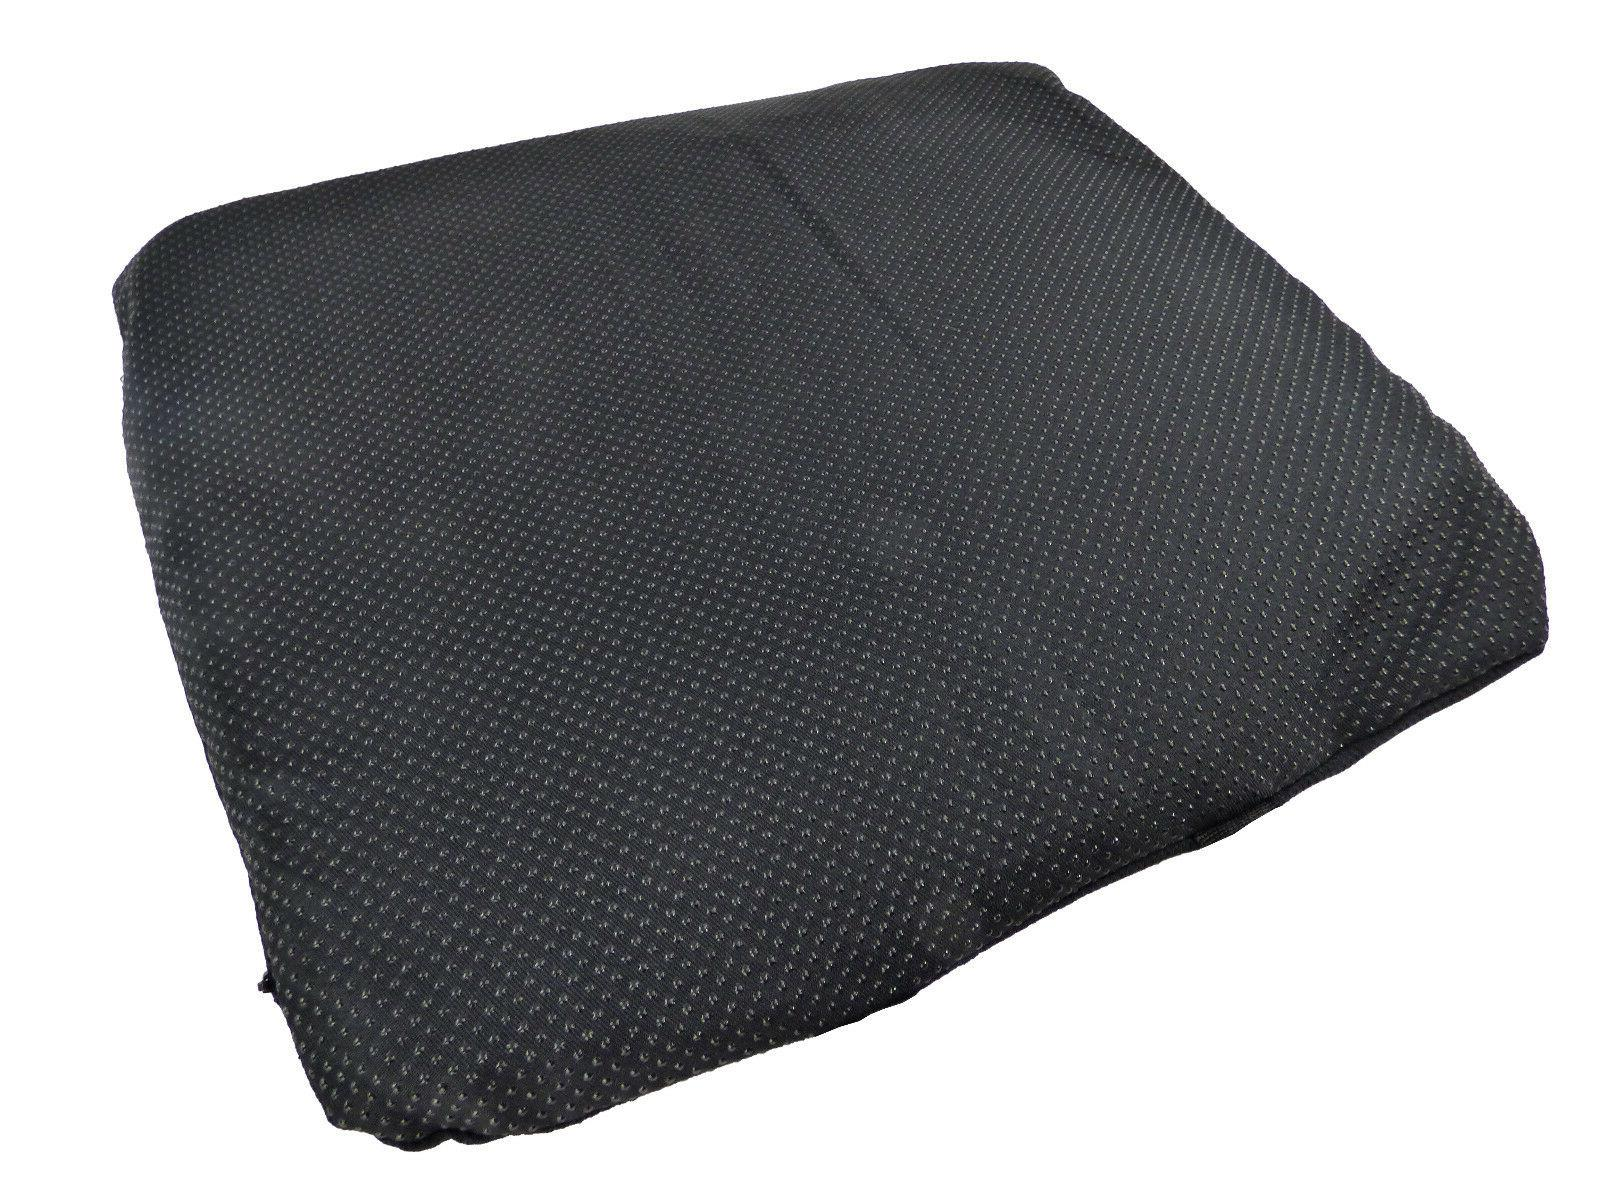 Egg Honeycomb Cooling Support Non-Slip Breathable Cover